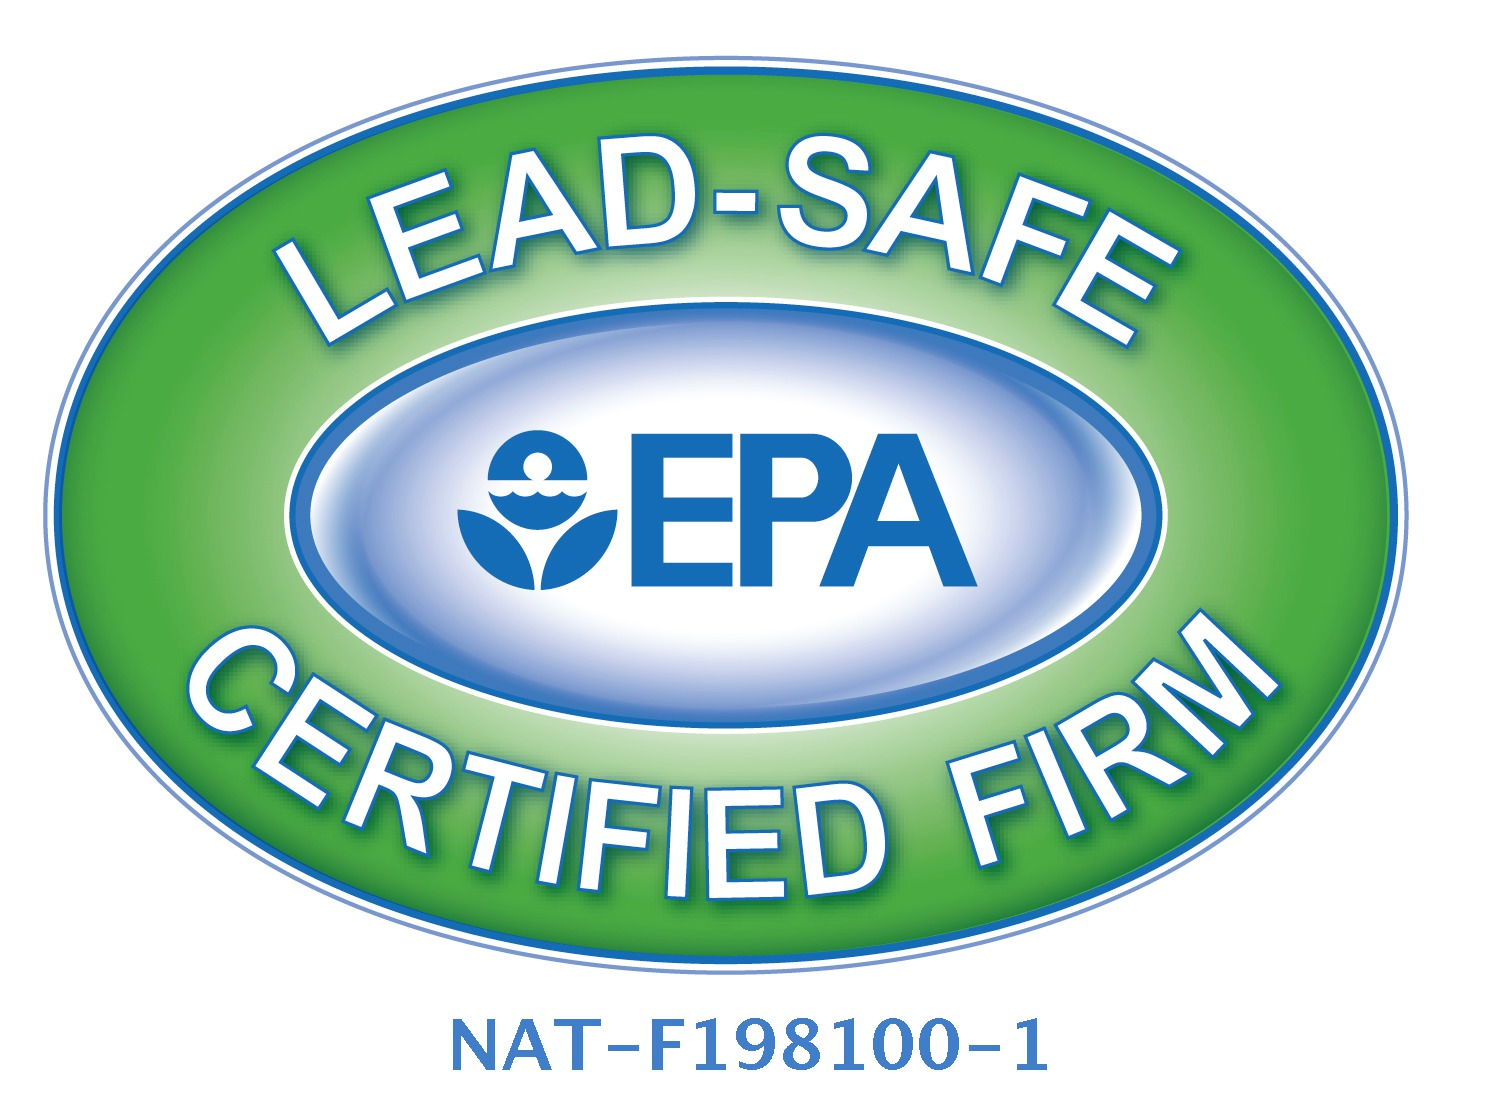 EPA Lead Sake Certified Firm